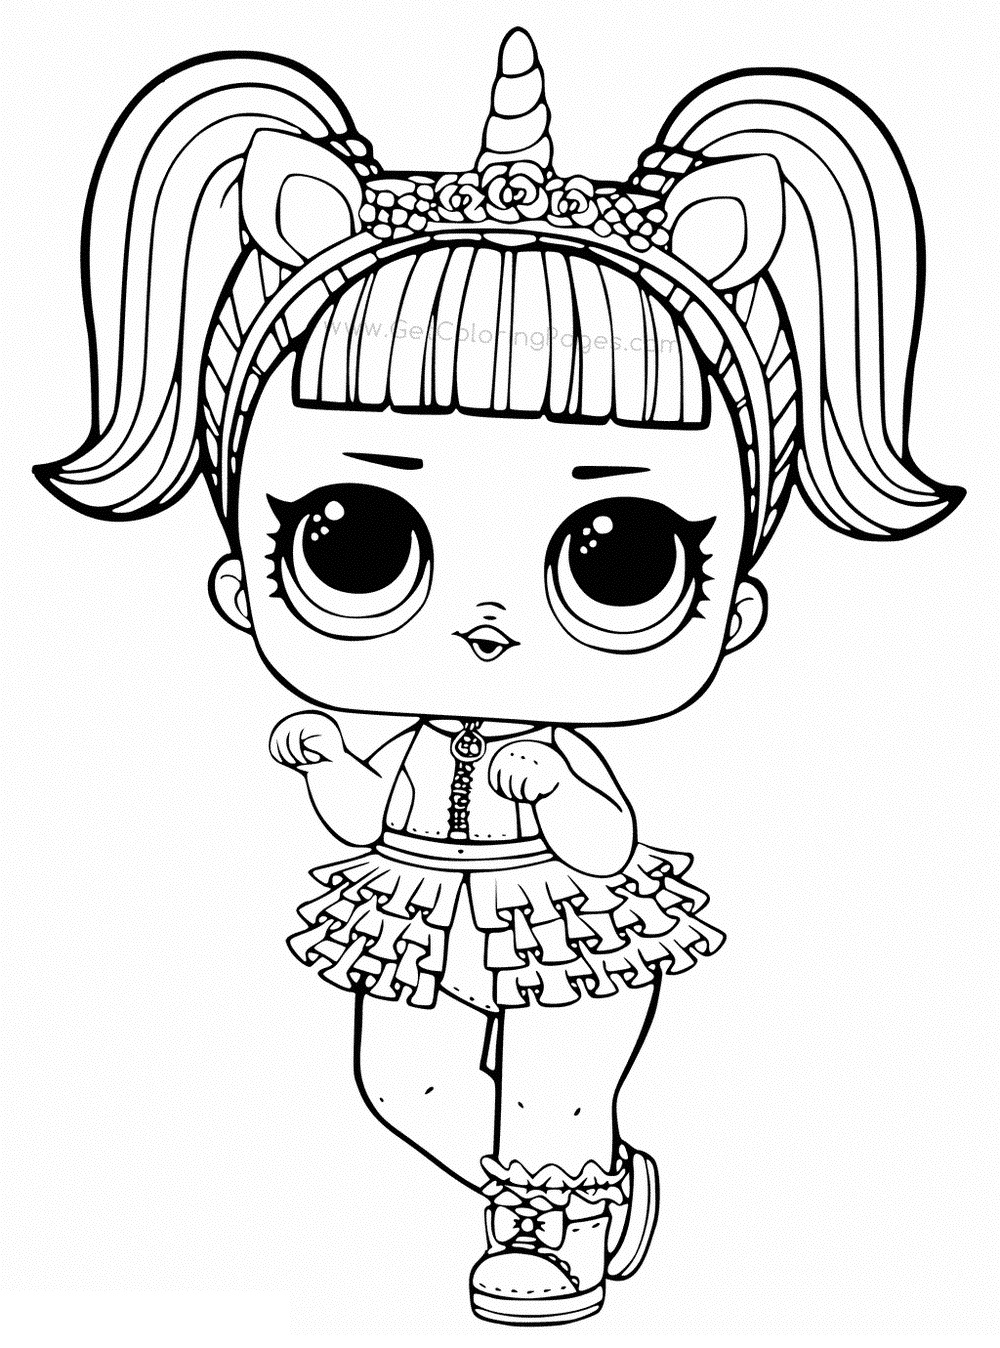 doll colouring pages lol surprise dolls coloring pages print them for free colouring pages doll